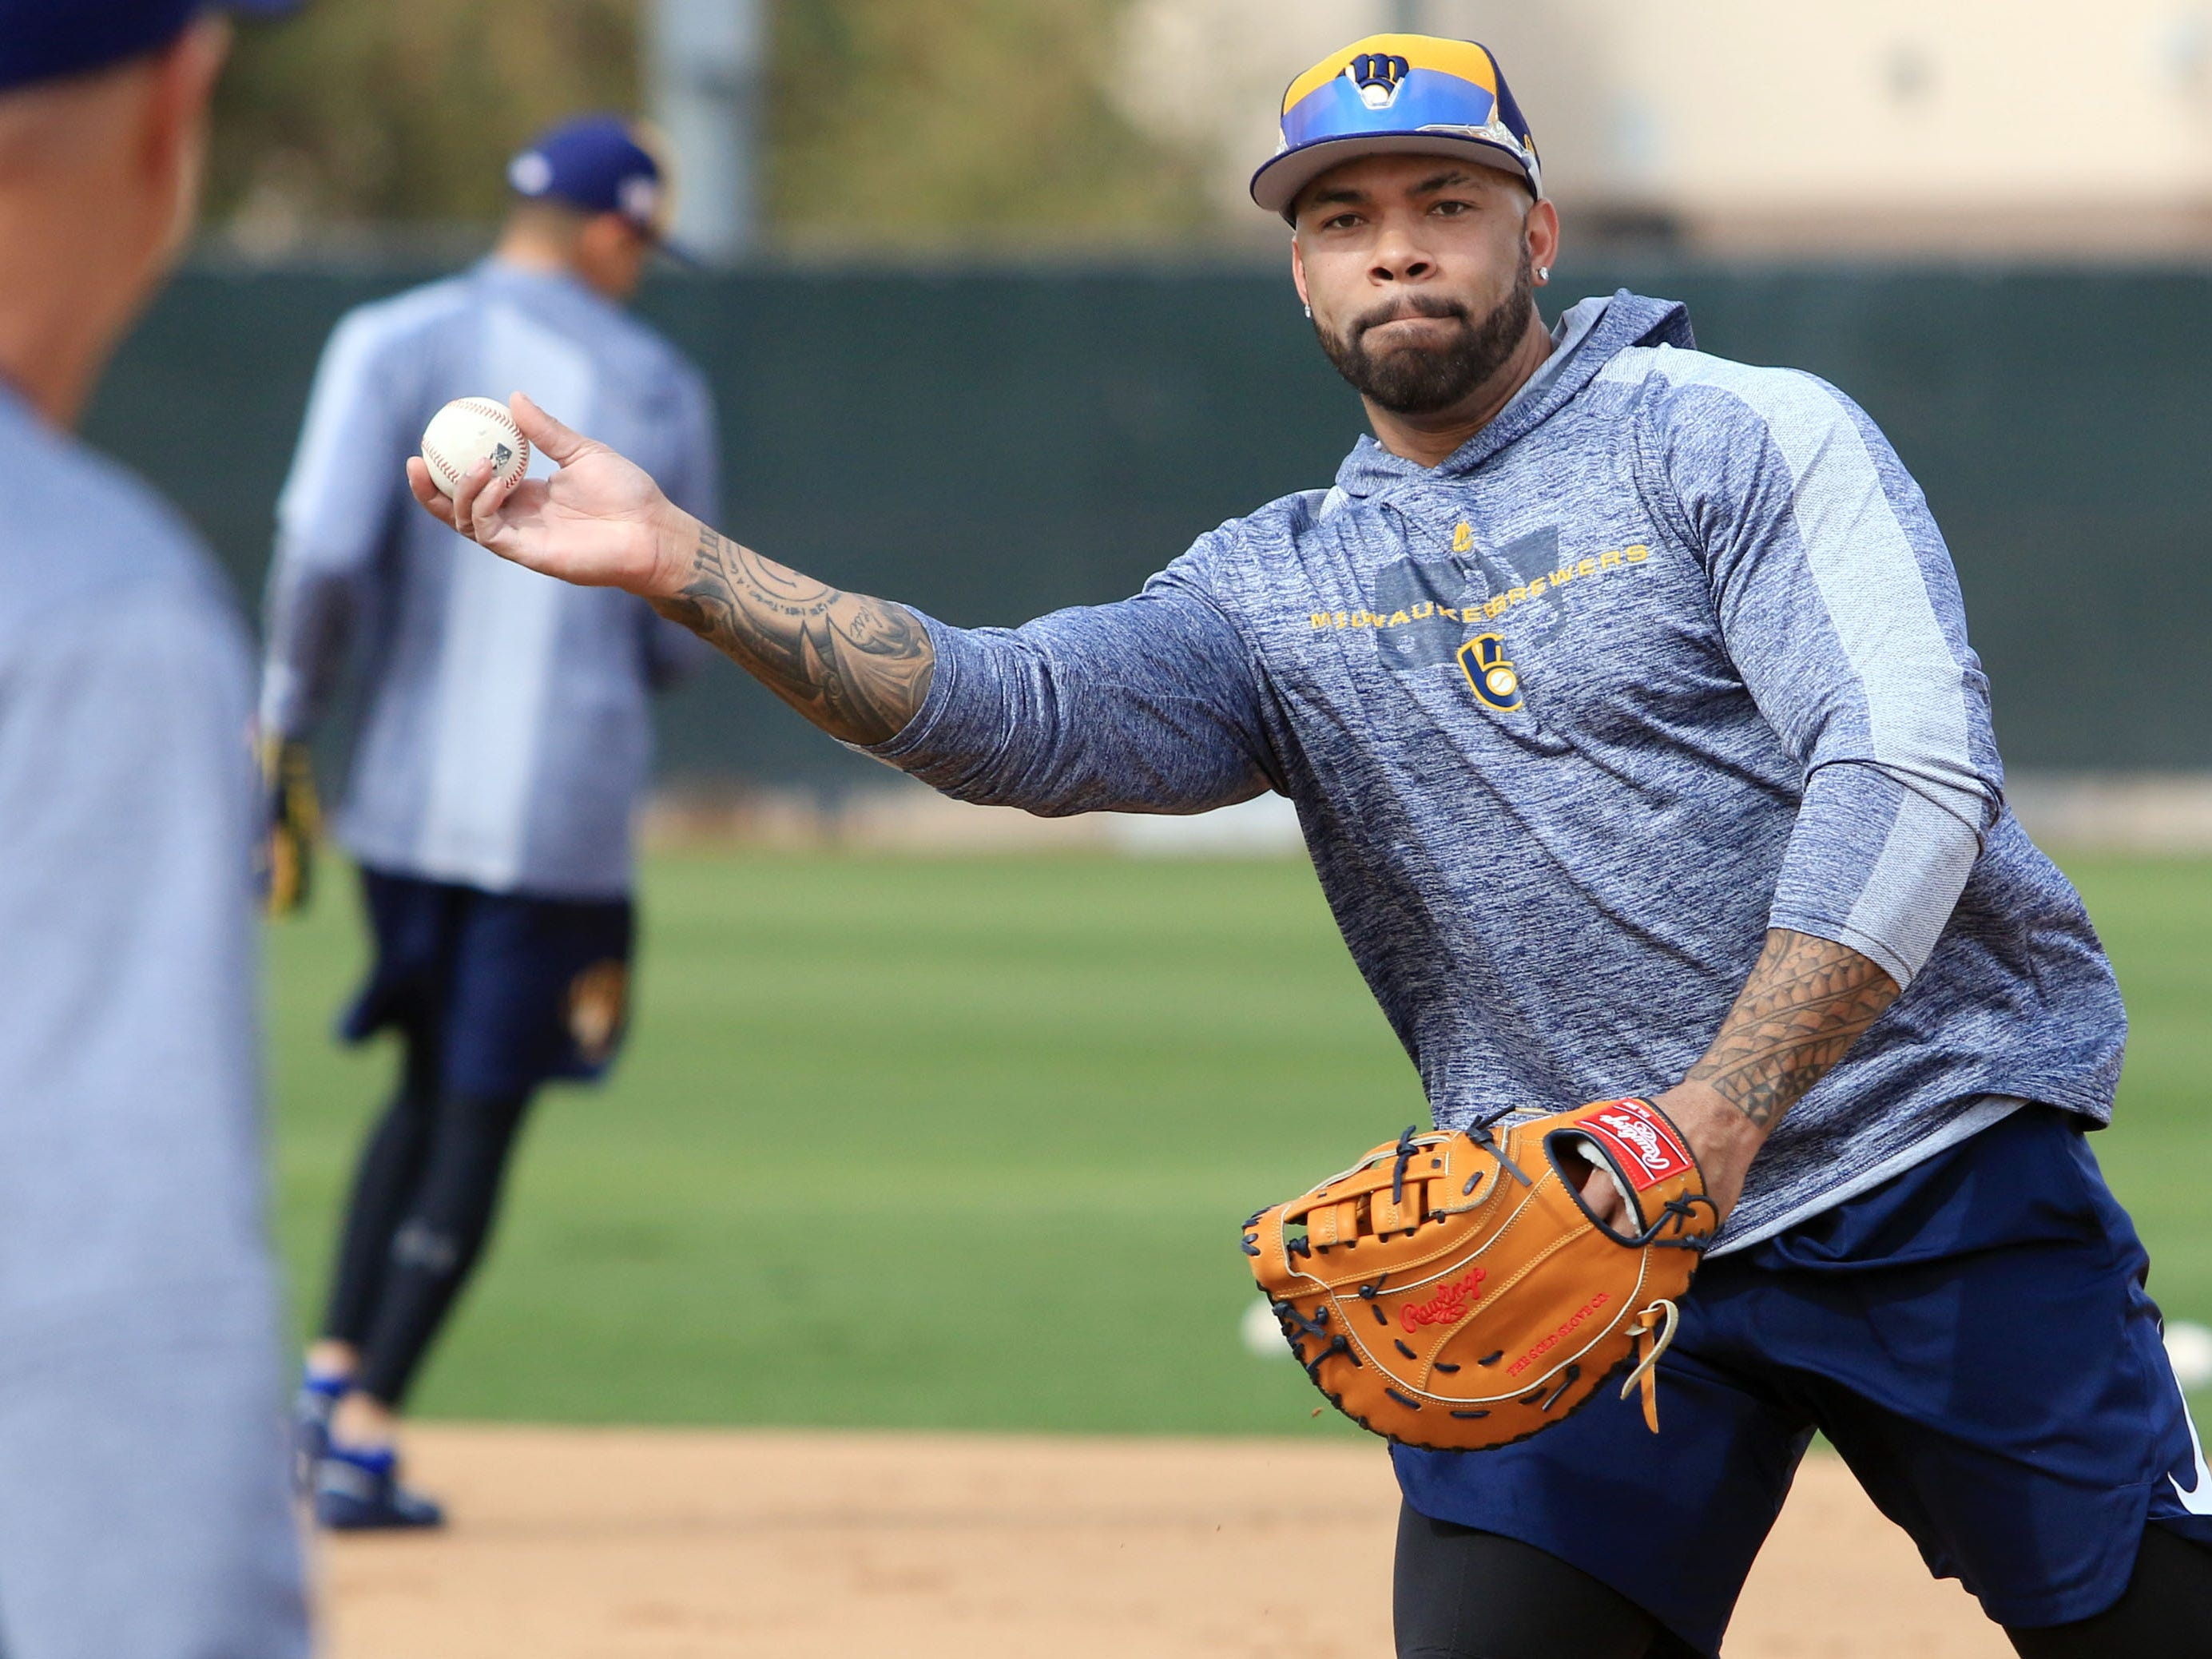 Brewers first baseman Eric Thames throws to a pitcher covering first during drills on the first day of spring training workouts in Phoenix.